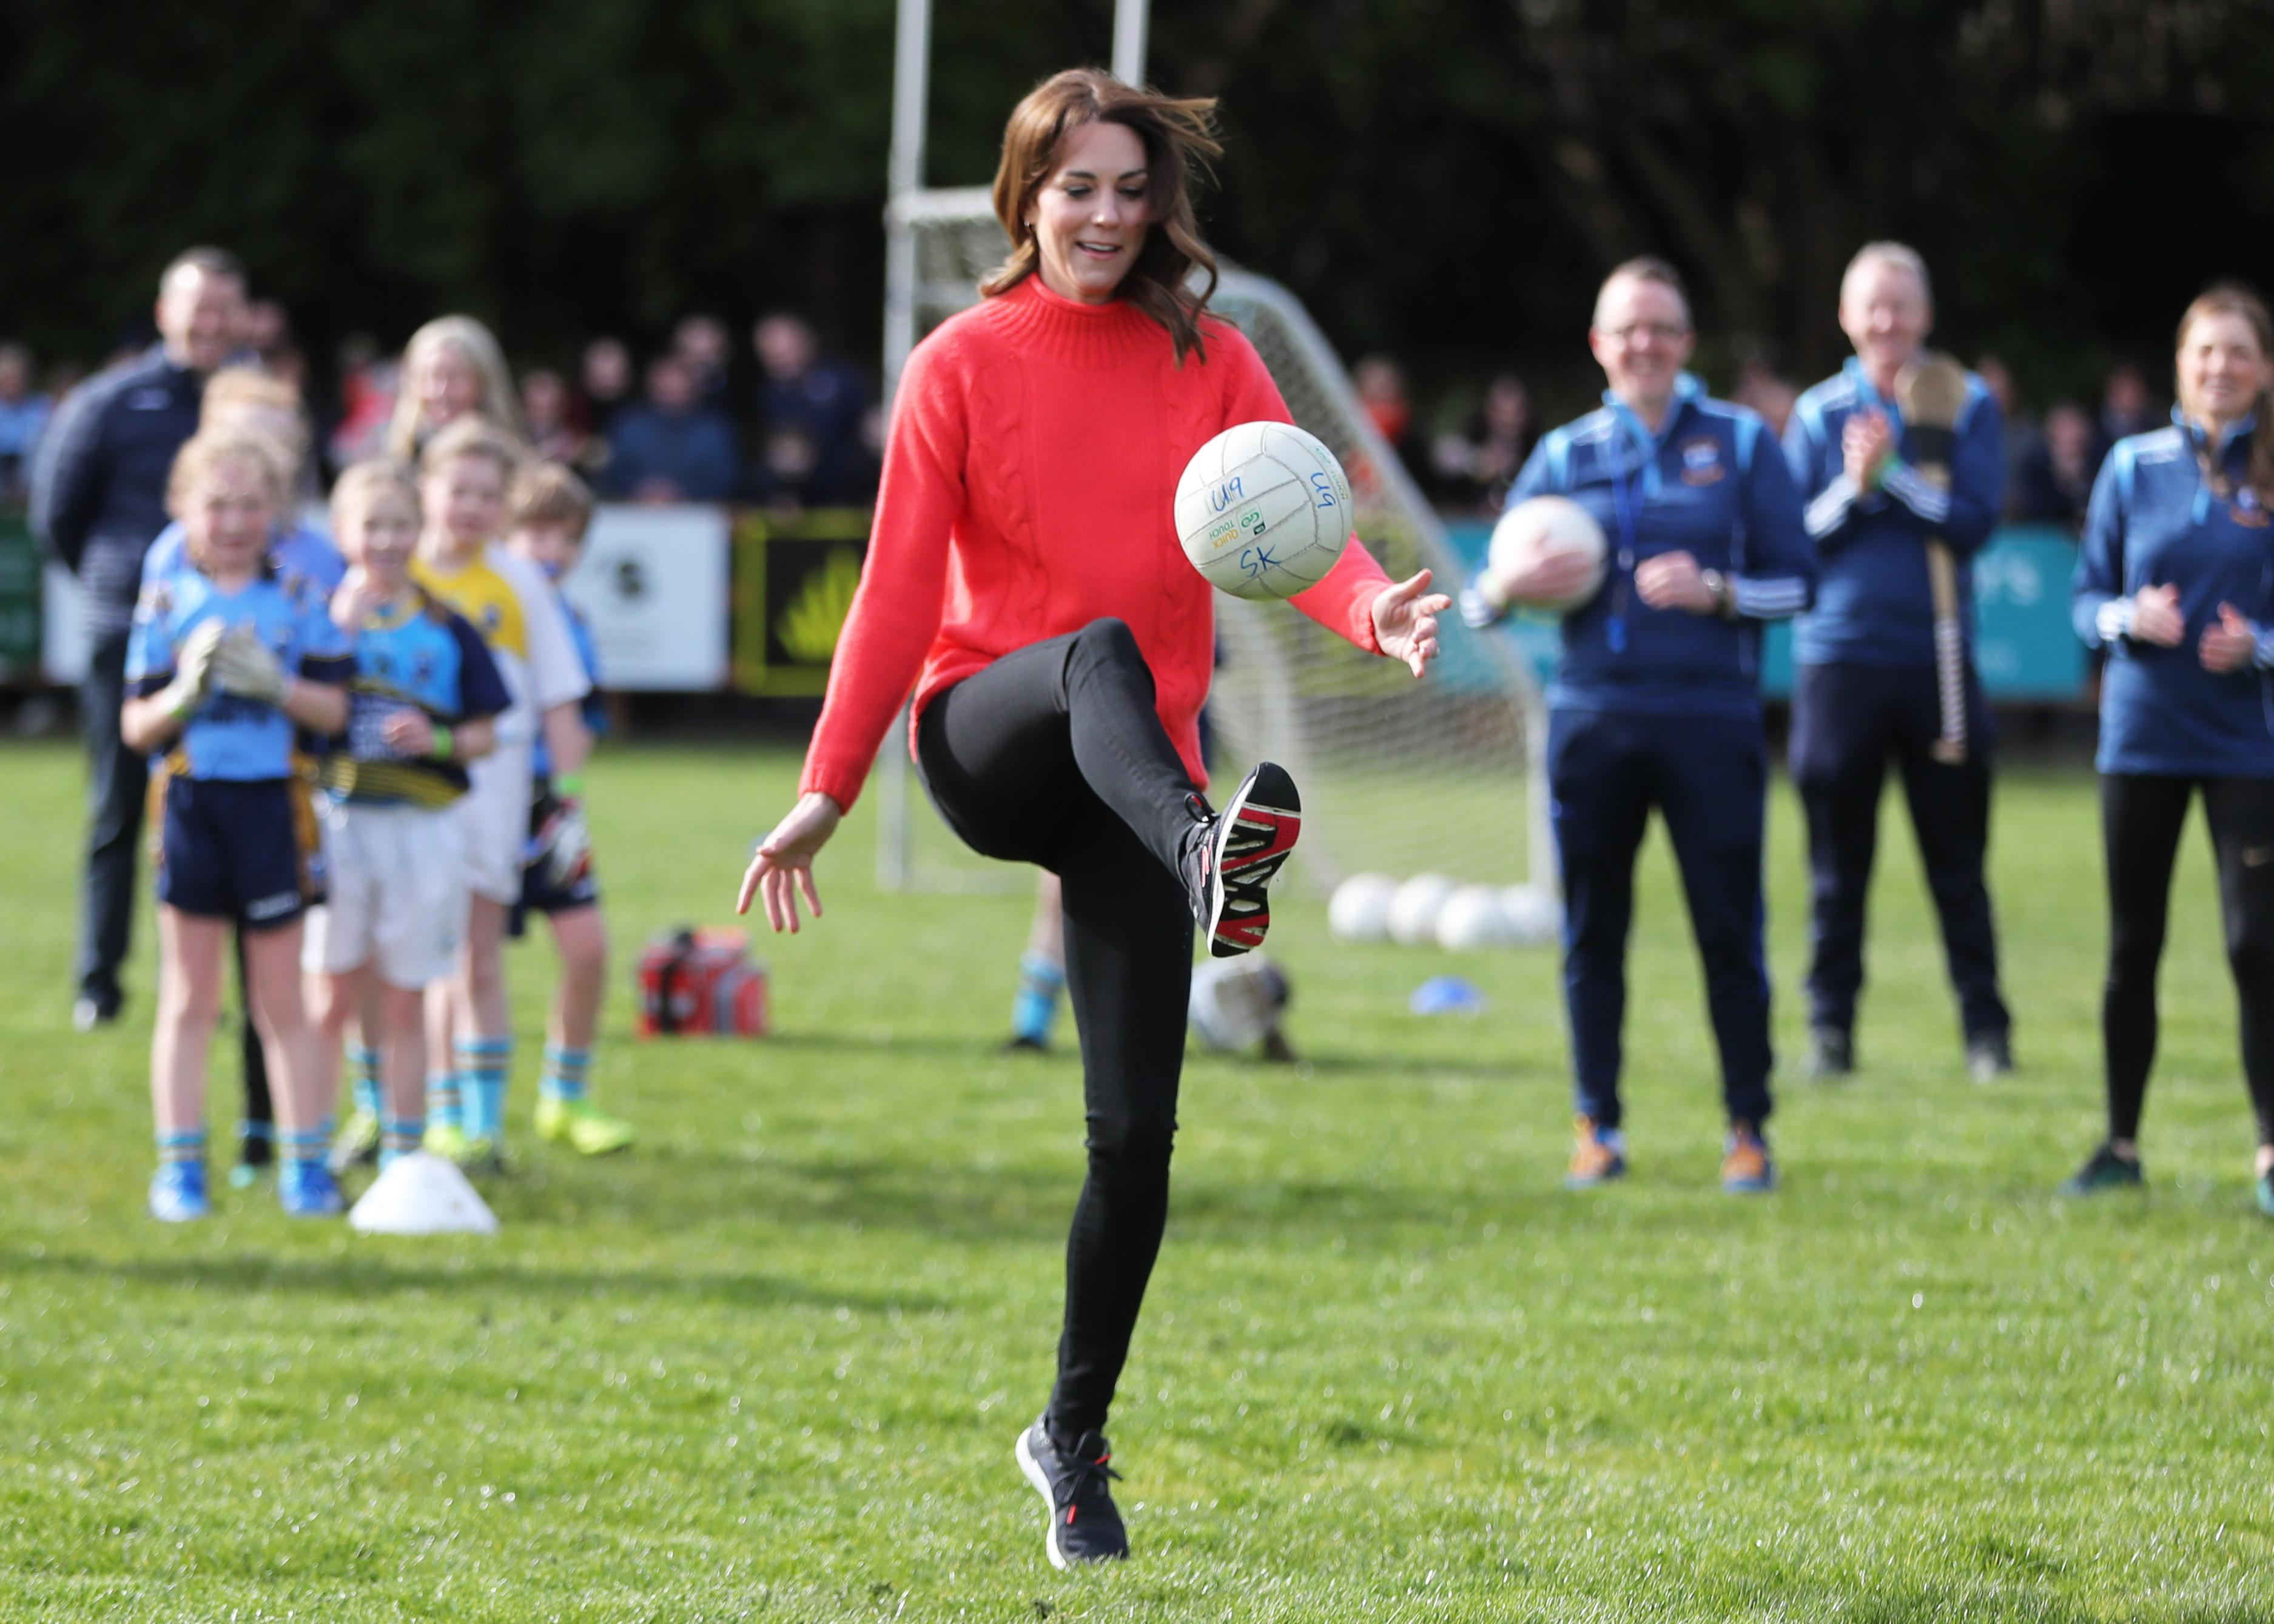 The Duchess of Cambridge playing Gaelic football at Salthill Knocknacarra GAA Club in Galway, where she is visiting with the Duke of Cambridge to learn more about traditional sports during the third day of their visit to the Republic of Ireland. PA Photo. Picture date: Thursday March 5, 2020. See PA story ROYAL Cambridge. Photo credit should read: Niall Carson/PA Wire